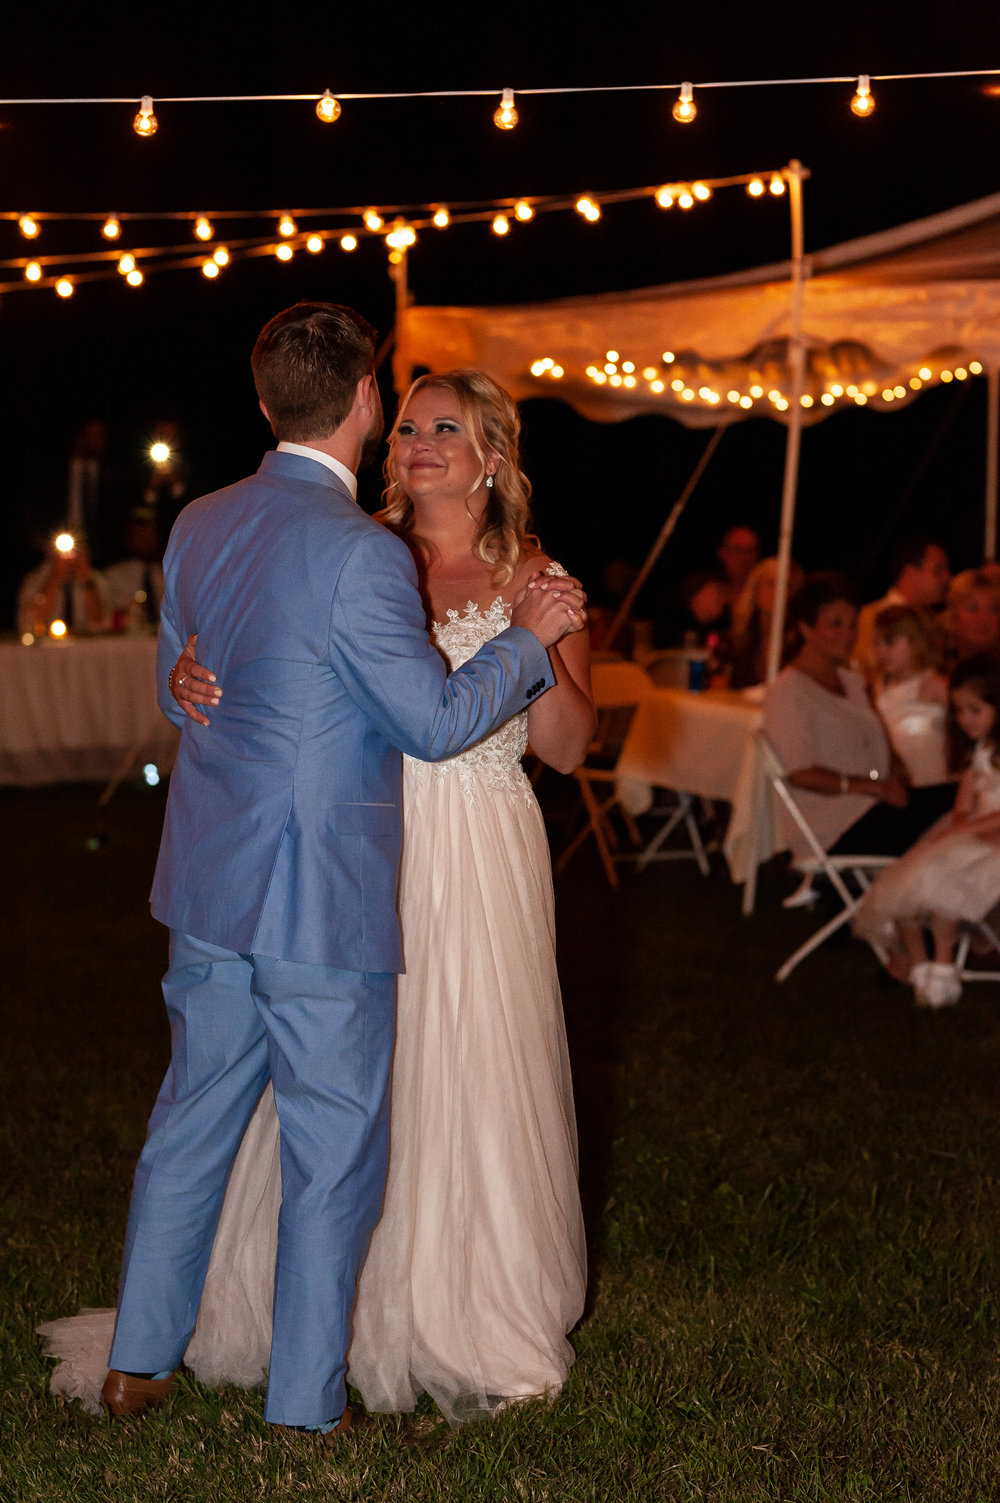 The couple then moved onto their first dance and father-daughter/mother-son dances